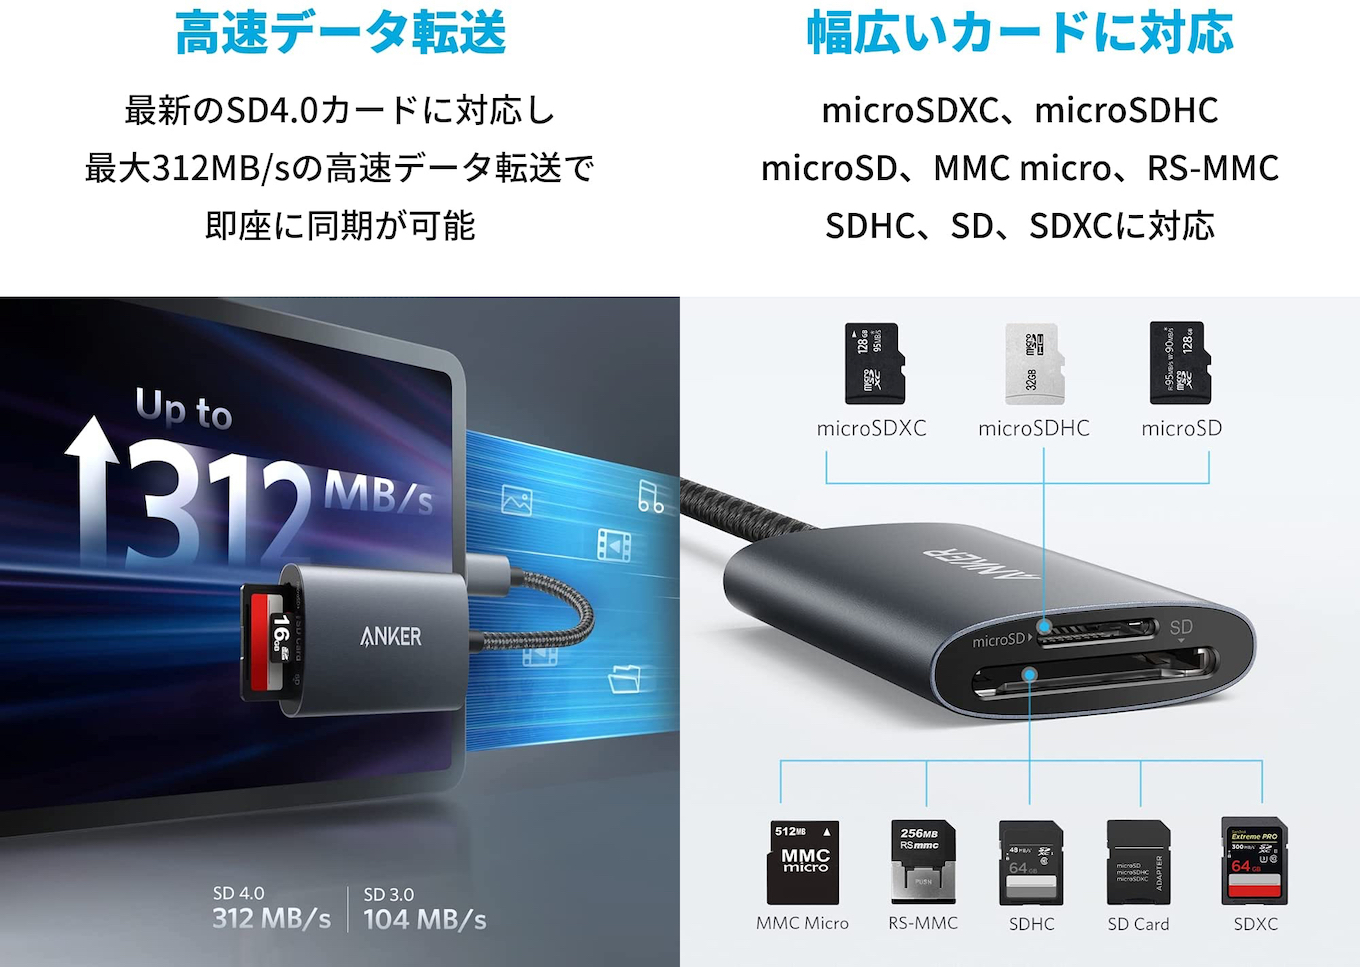 Anker PowerExpand 2-in-1 SD 4.0 Card Reader spec